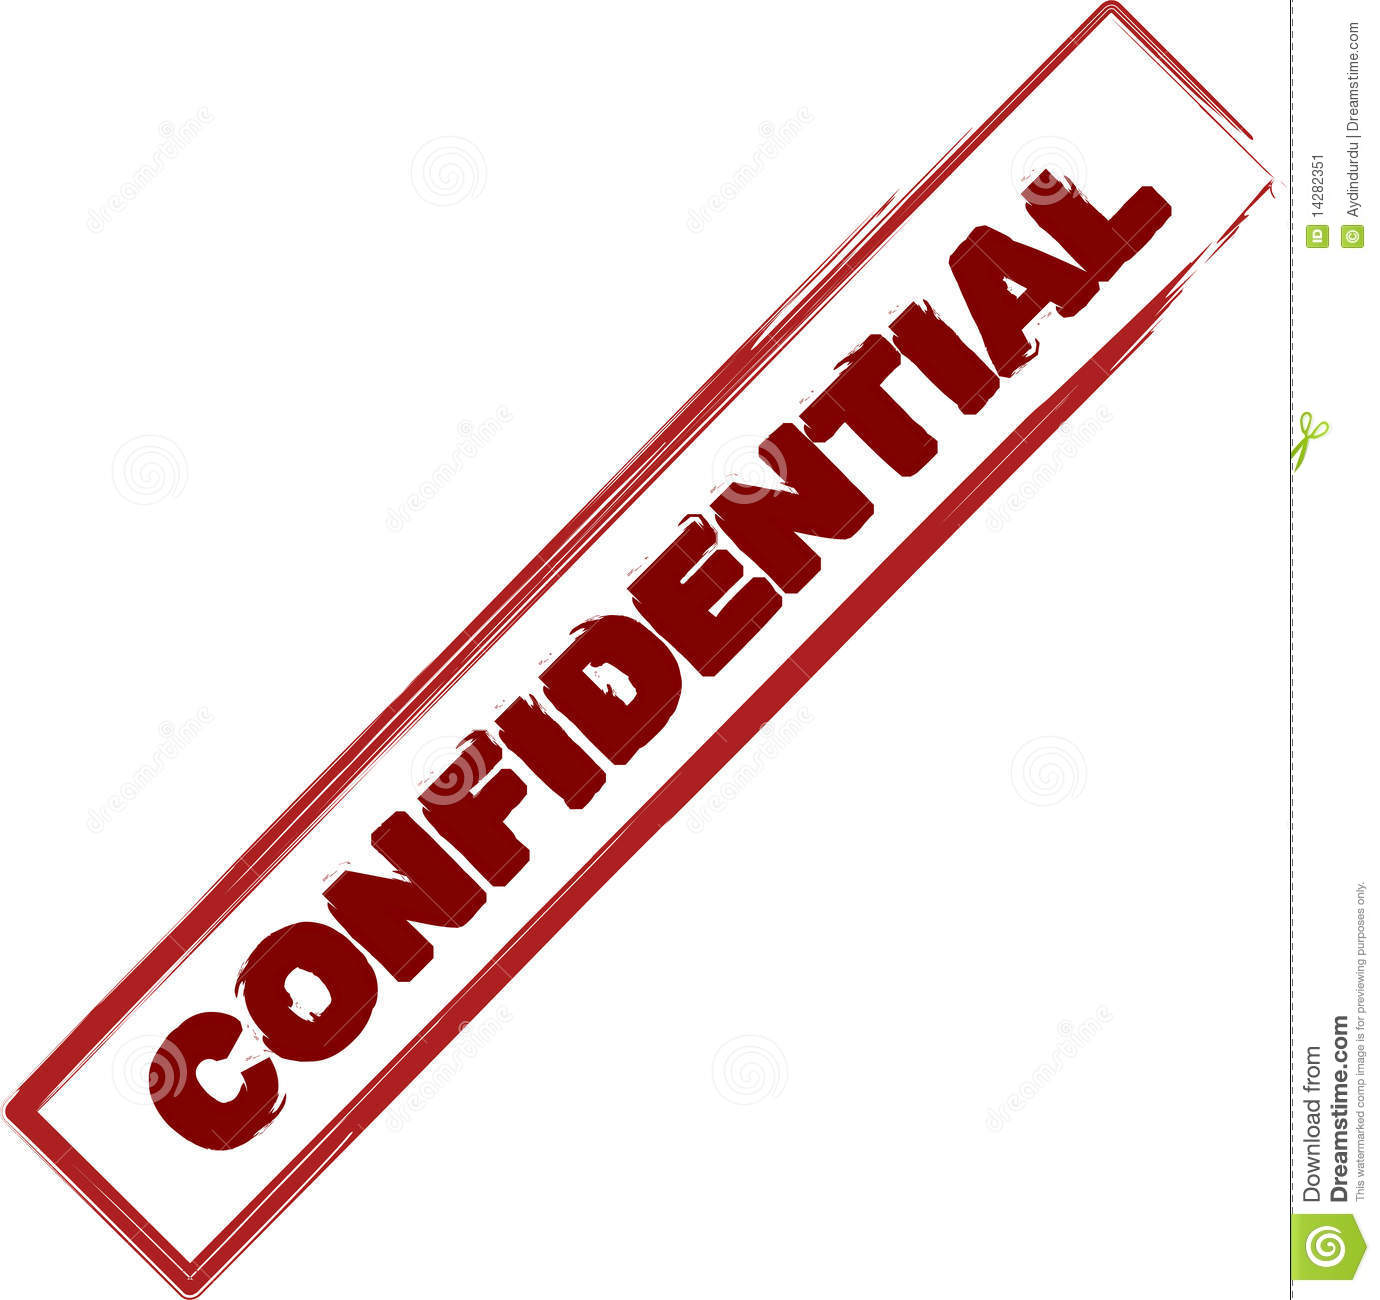 Confidential Stamp Stock Image   Image  14282351